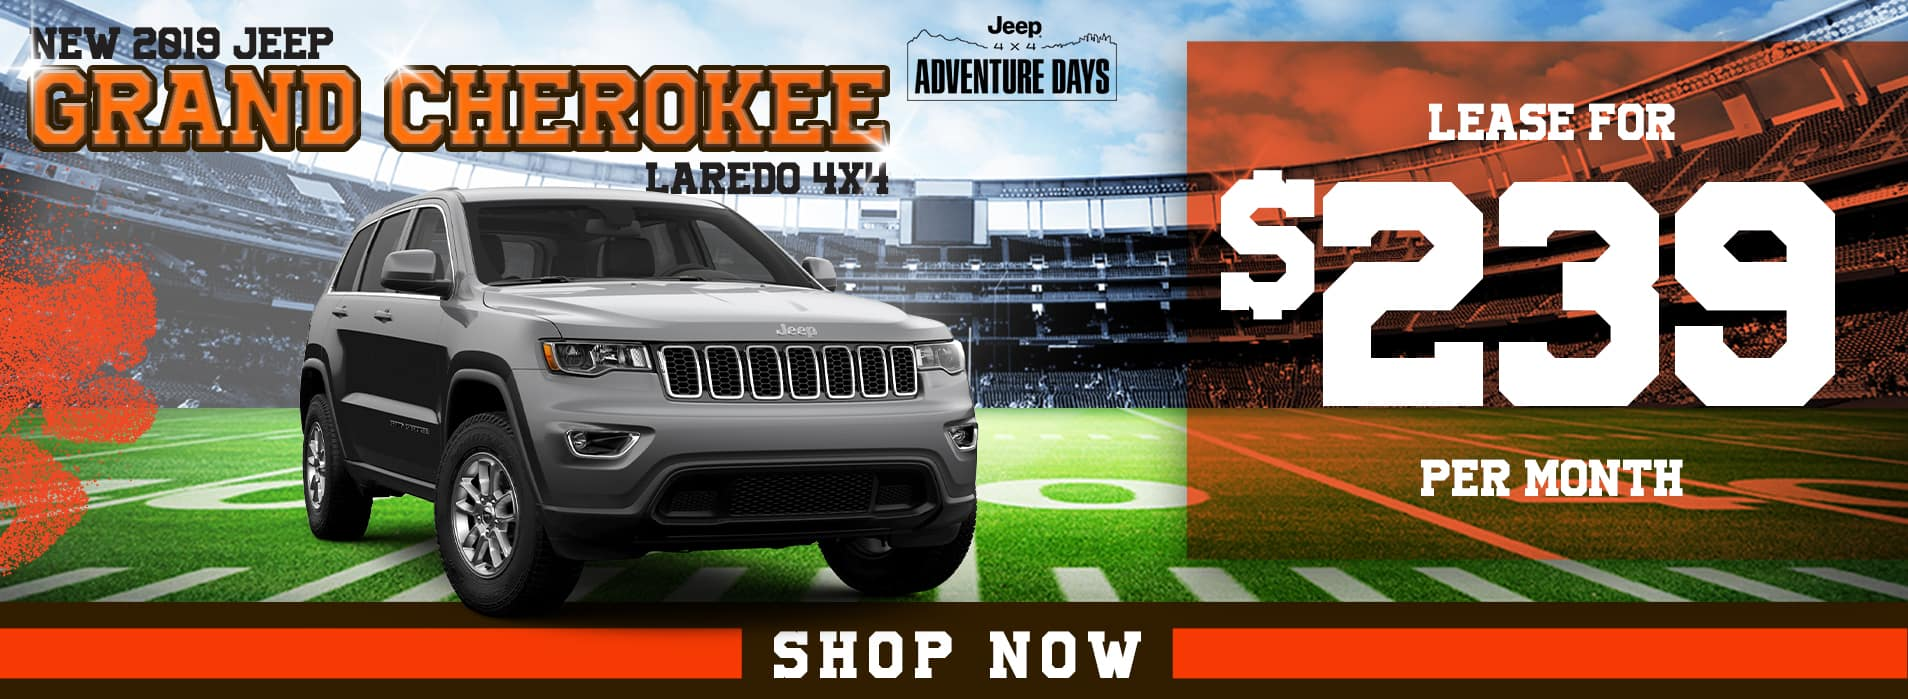 Grand Cherokee | Lease for $239 per month